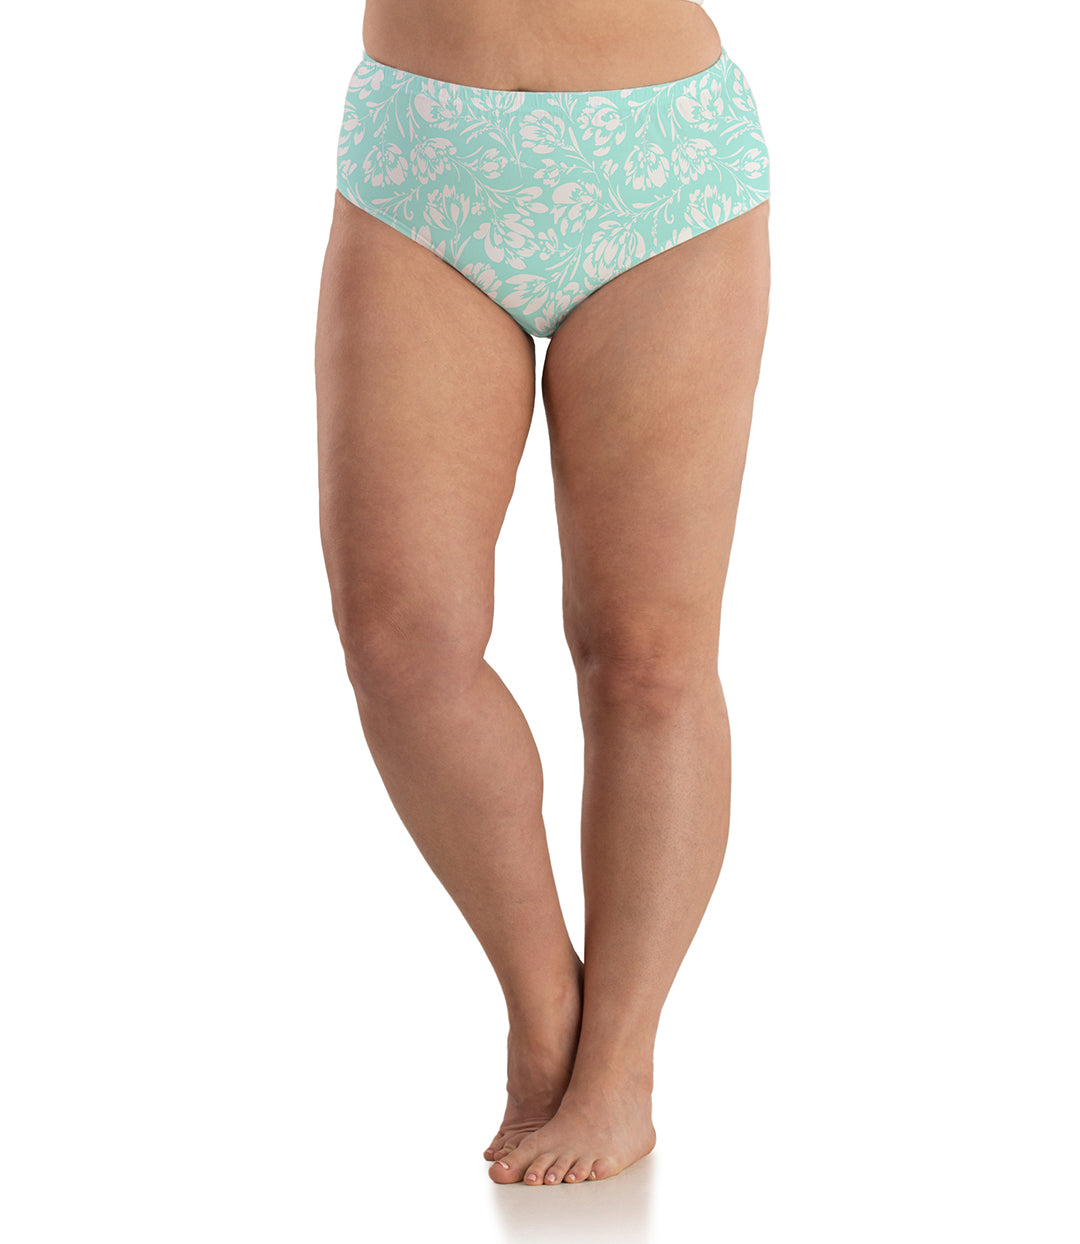 Junowear Cotton Stretch Classic Brief Spring Blue Floral Print-Intimates Briefs-Hop Wo Trading Co Ltd-XL-Spring Blue Floral-JunoActive